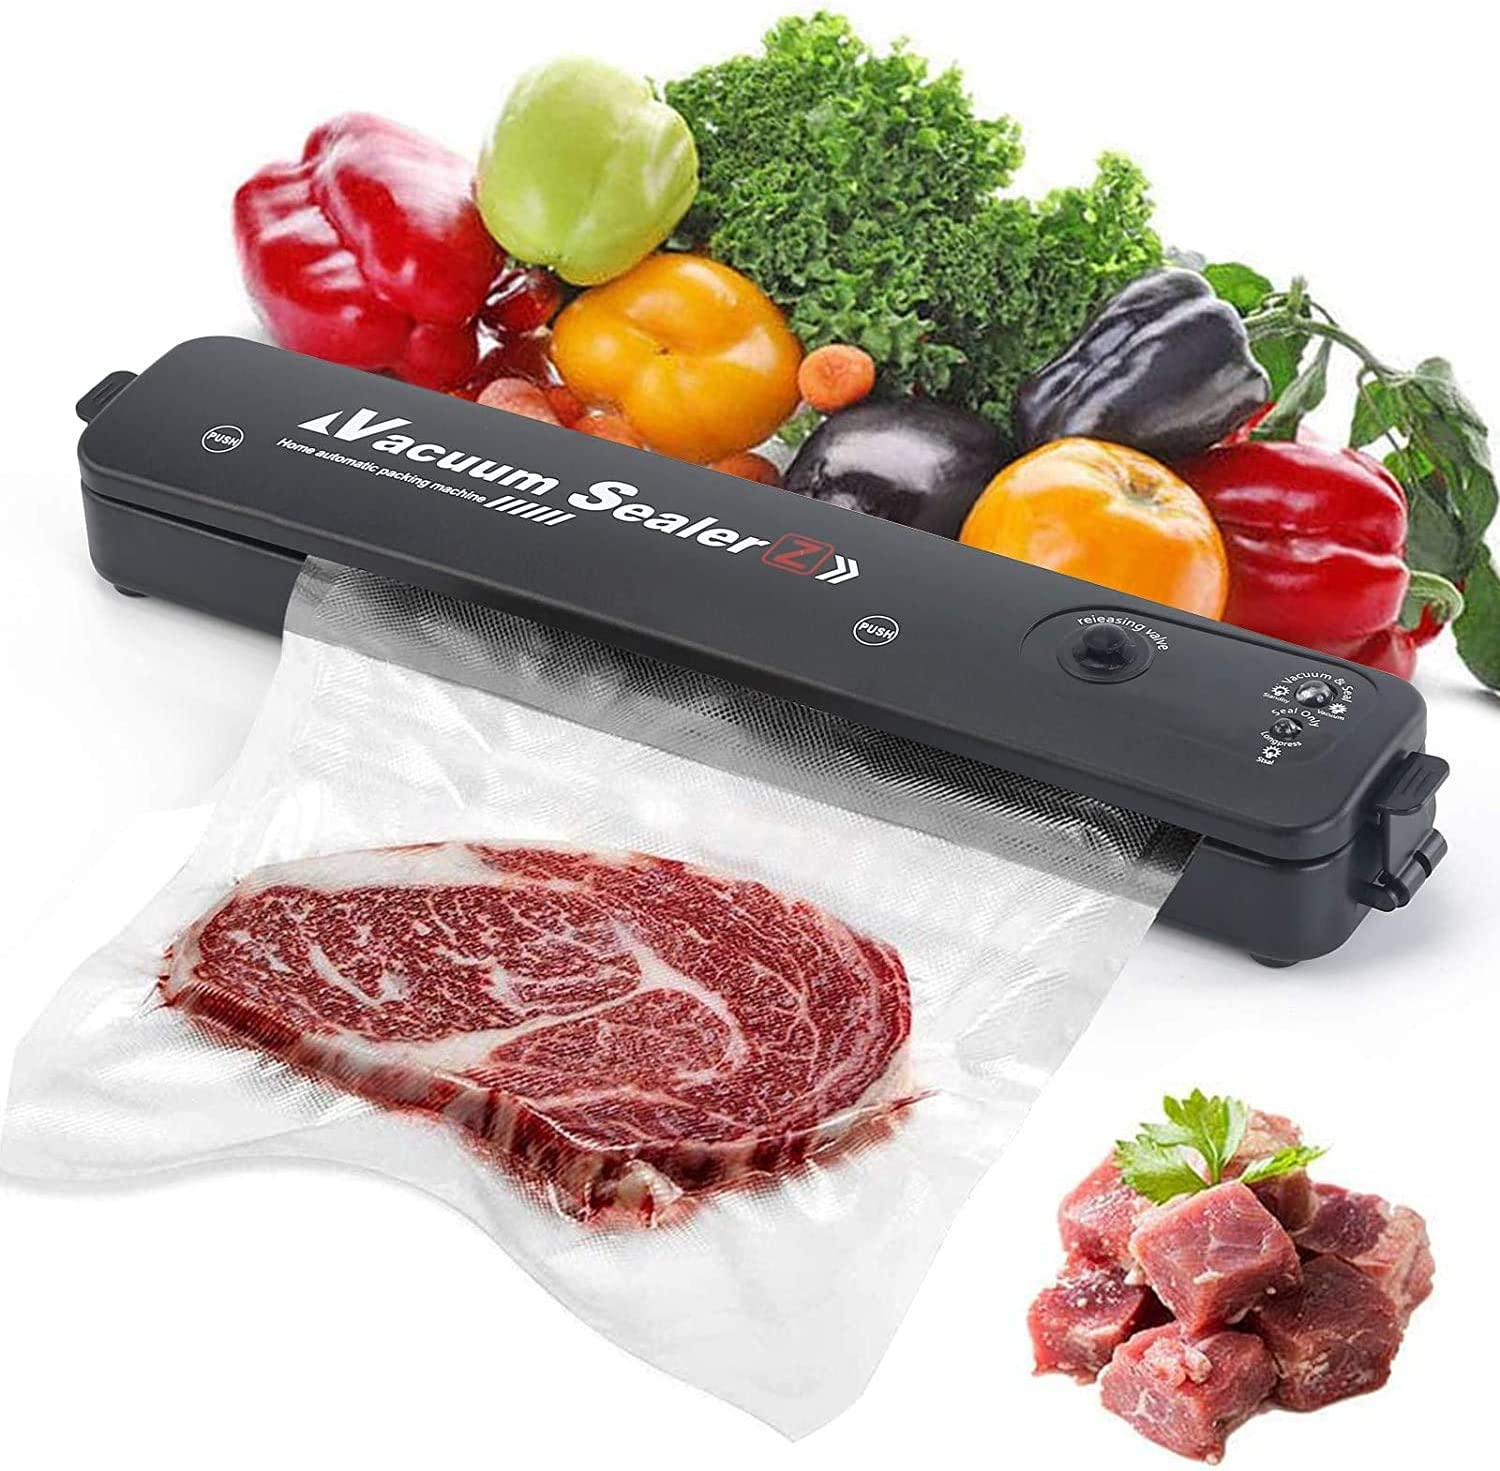 Food Saver Vacuum Sealer Machine, One-Touch Vacuum Packing Food Sealer Storage Packing Machine for Food Sealing Preservation, with 15 Vacuum Sealer Bags Food Storage Home Use